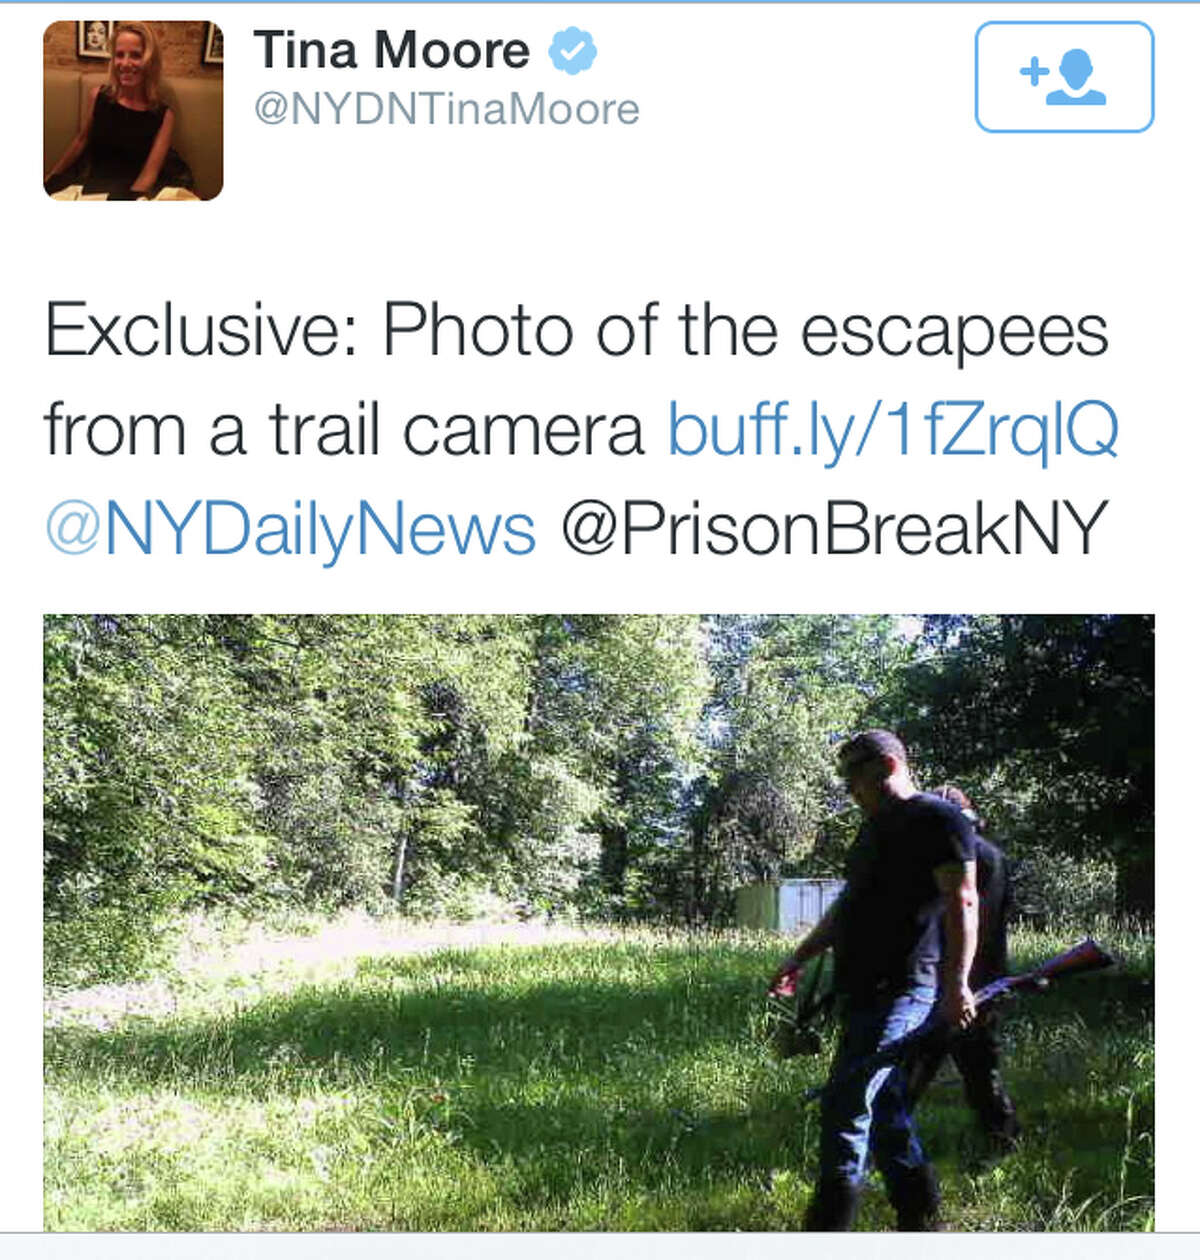 A June 28 tweet from the Daily News' Tina Moore proclaims an